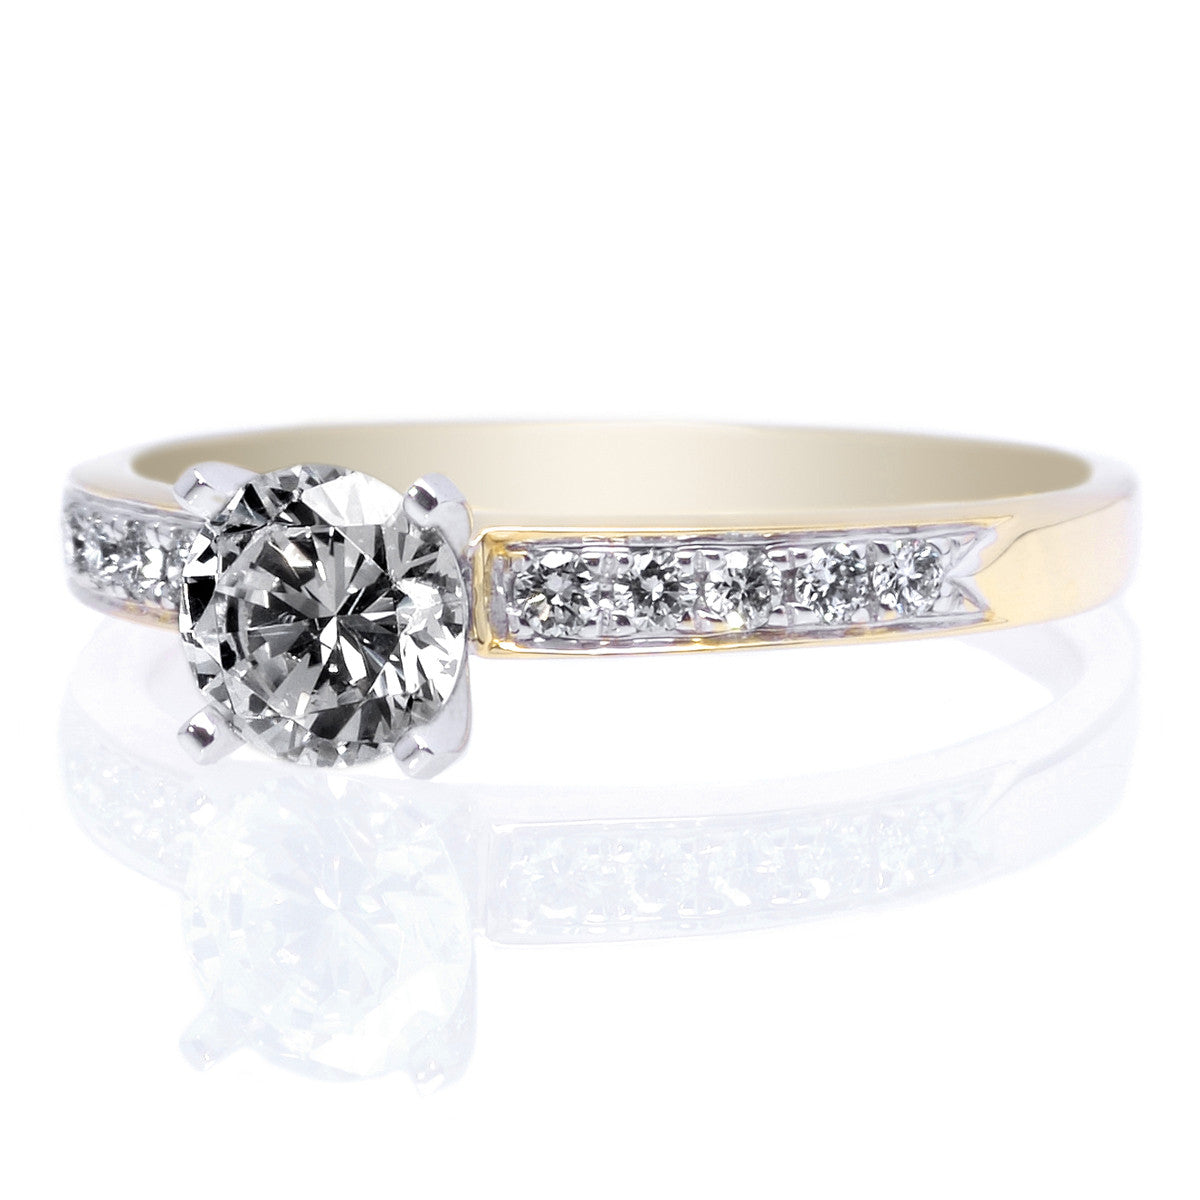 18K Yellow Gold and Platinum 10-Stone Engagement Ring Setting